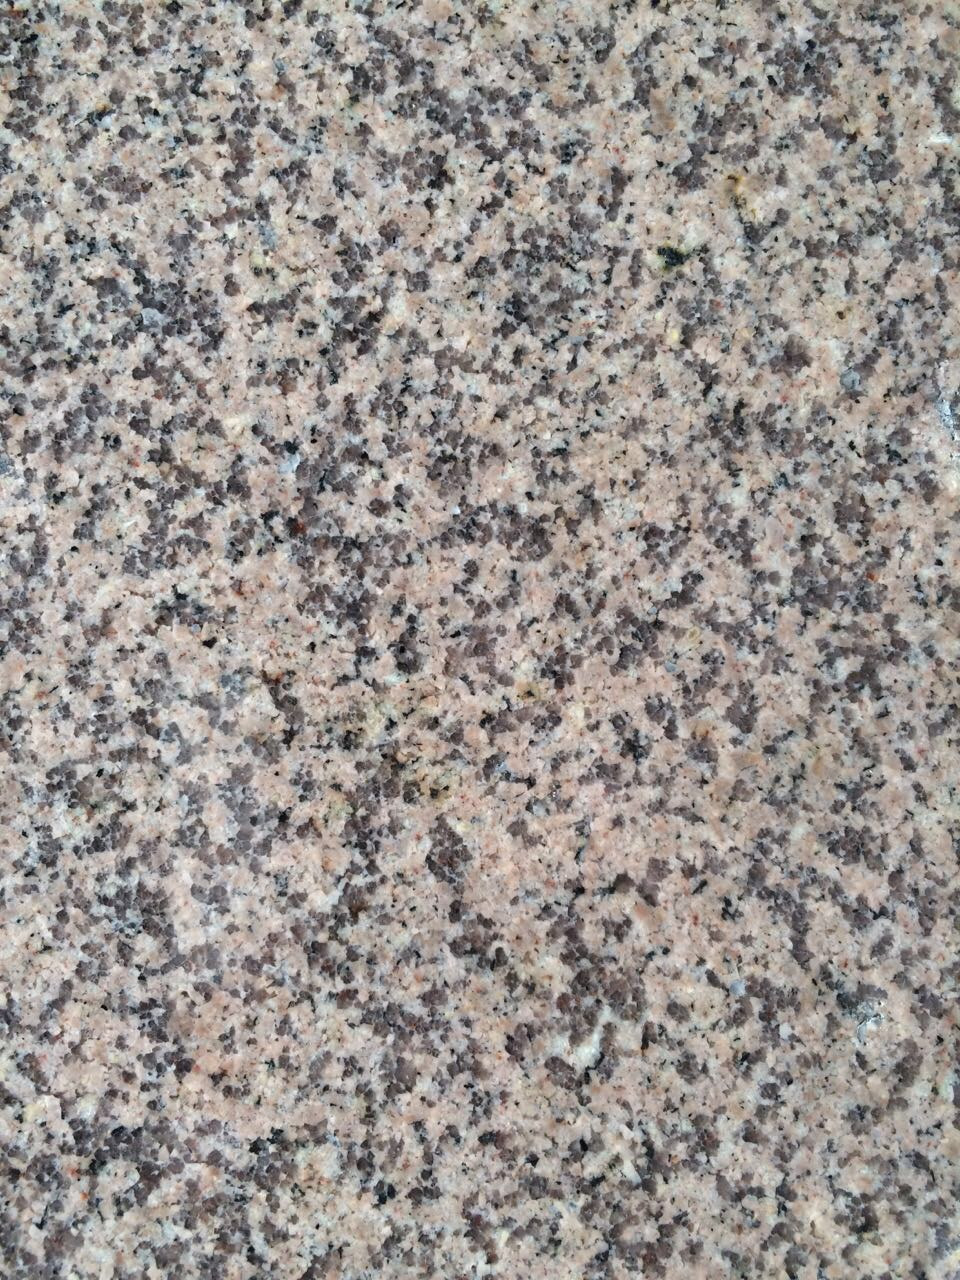 paving stone granite desert brown brown graite  cheap granite from china